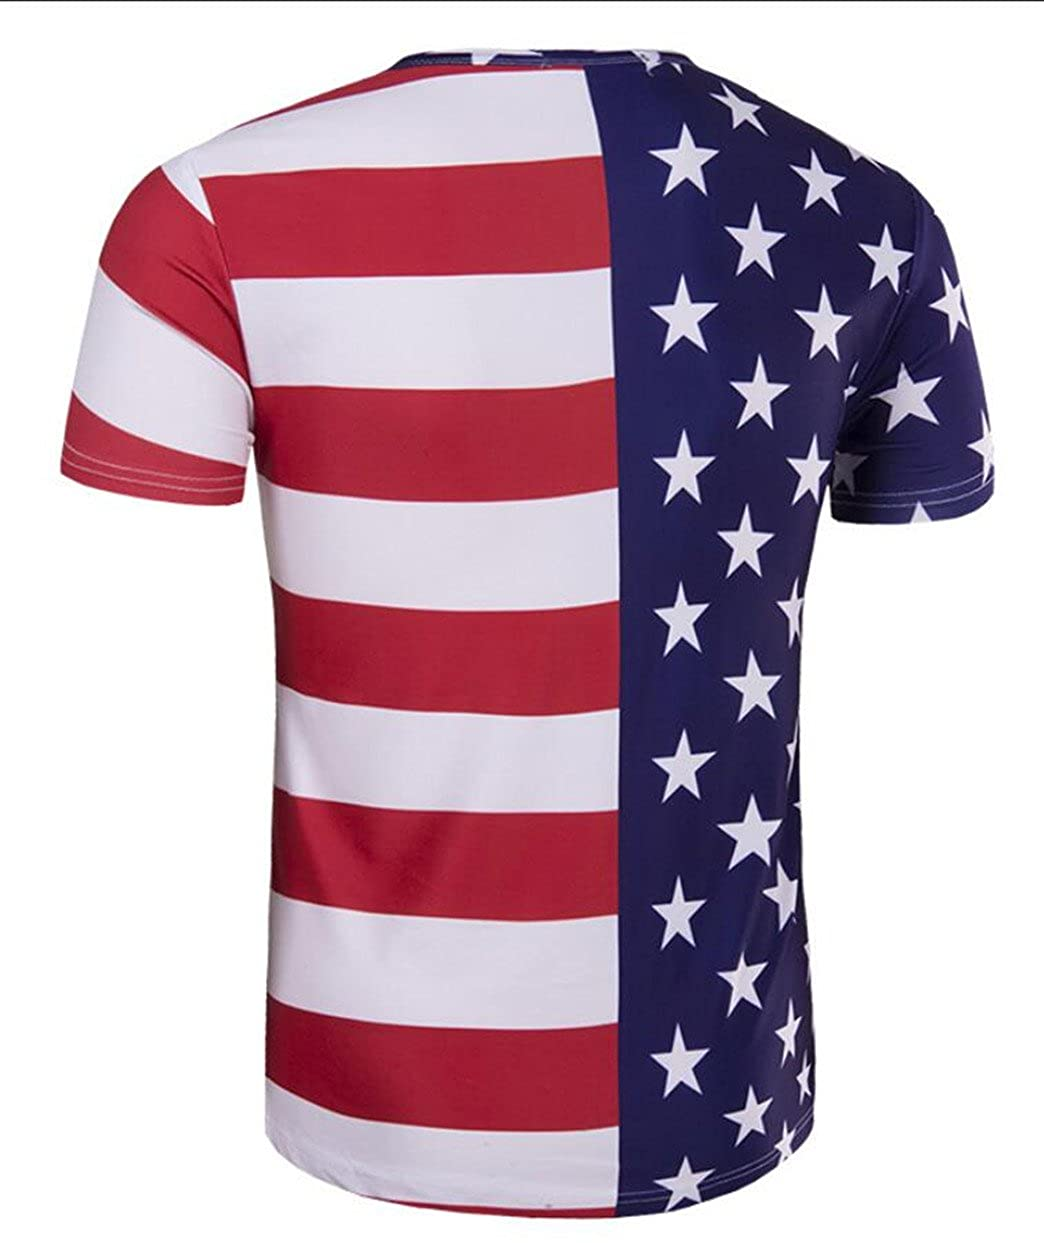 yibiyuan Mens Rounded Collar Short Sleeve Hit Color American Flag Printed Stitching T Shirt